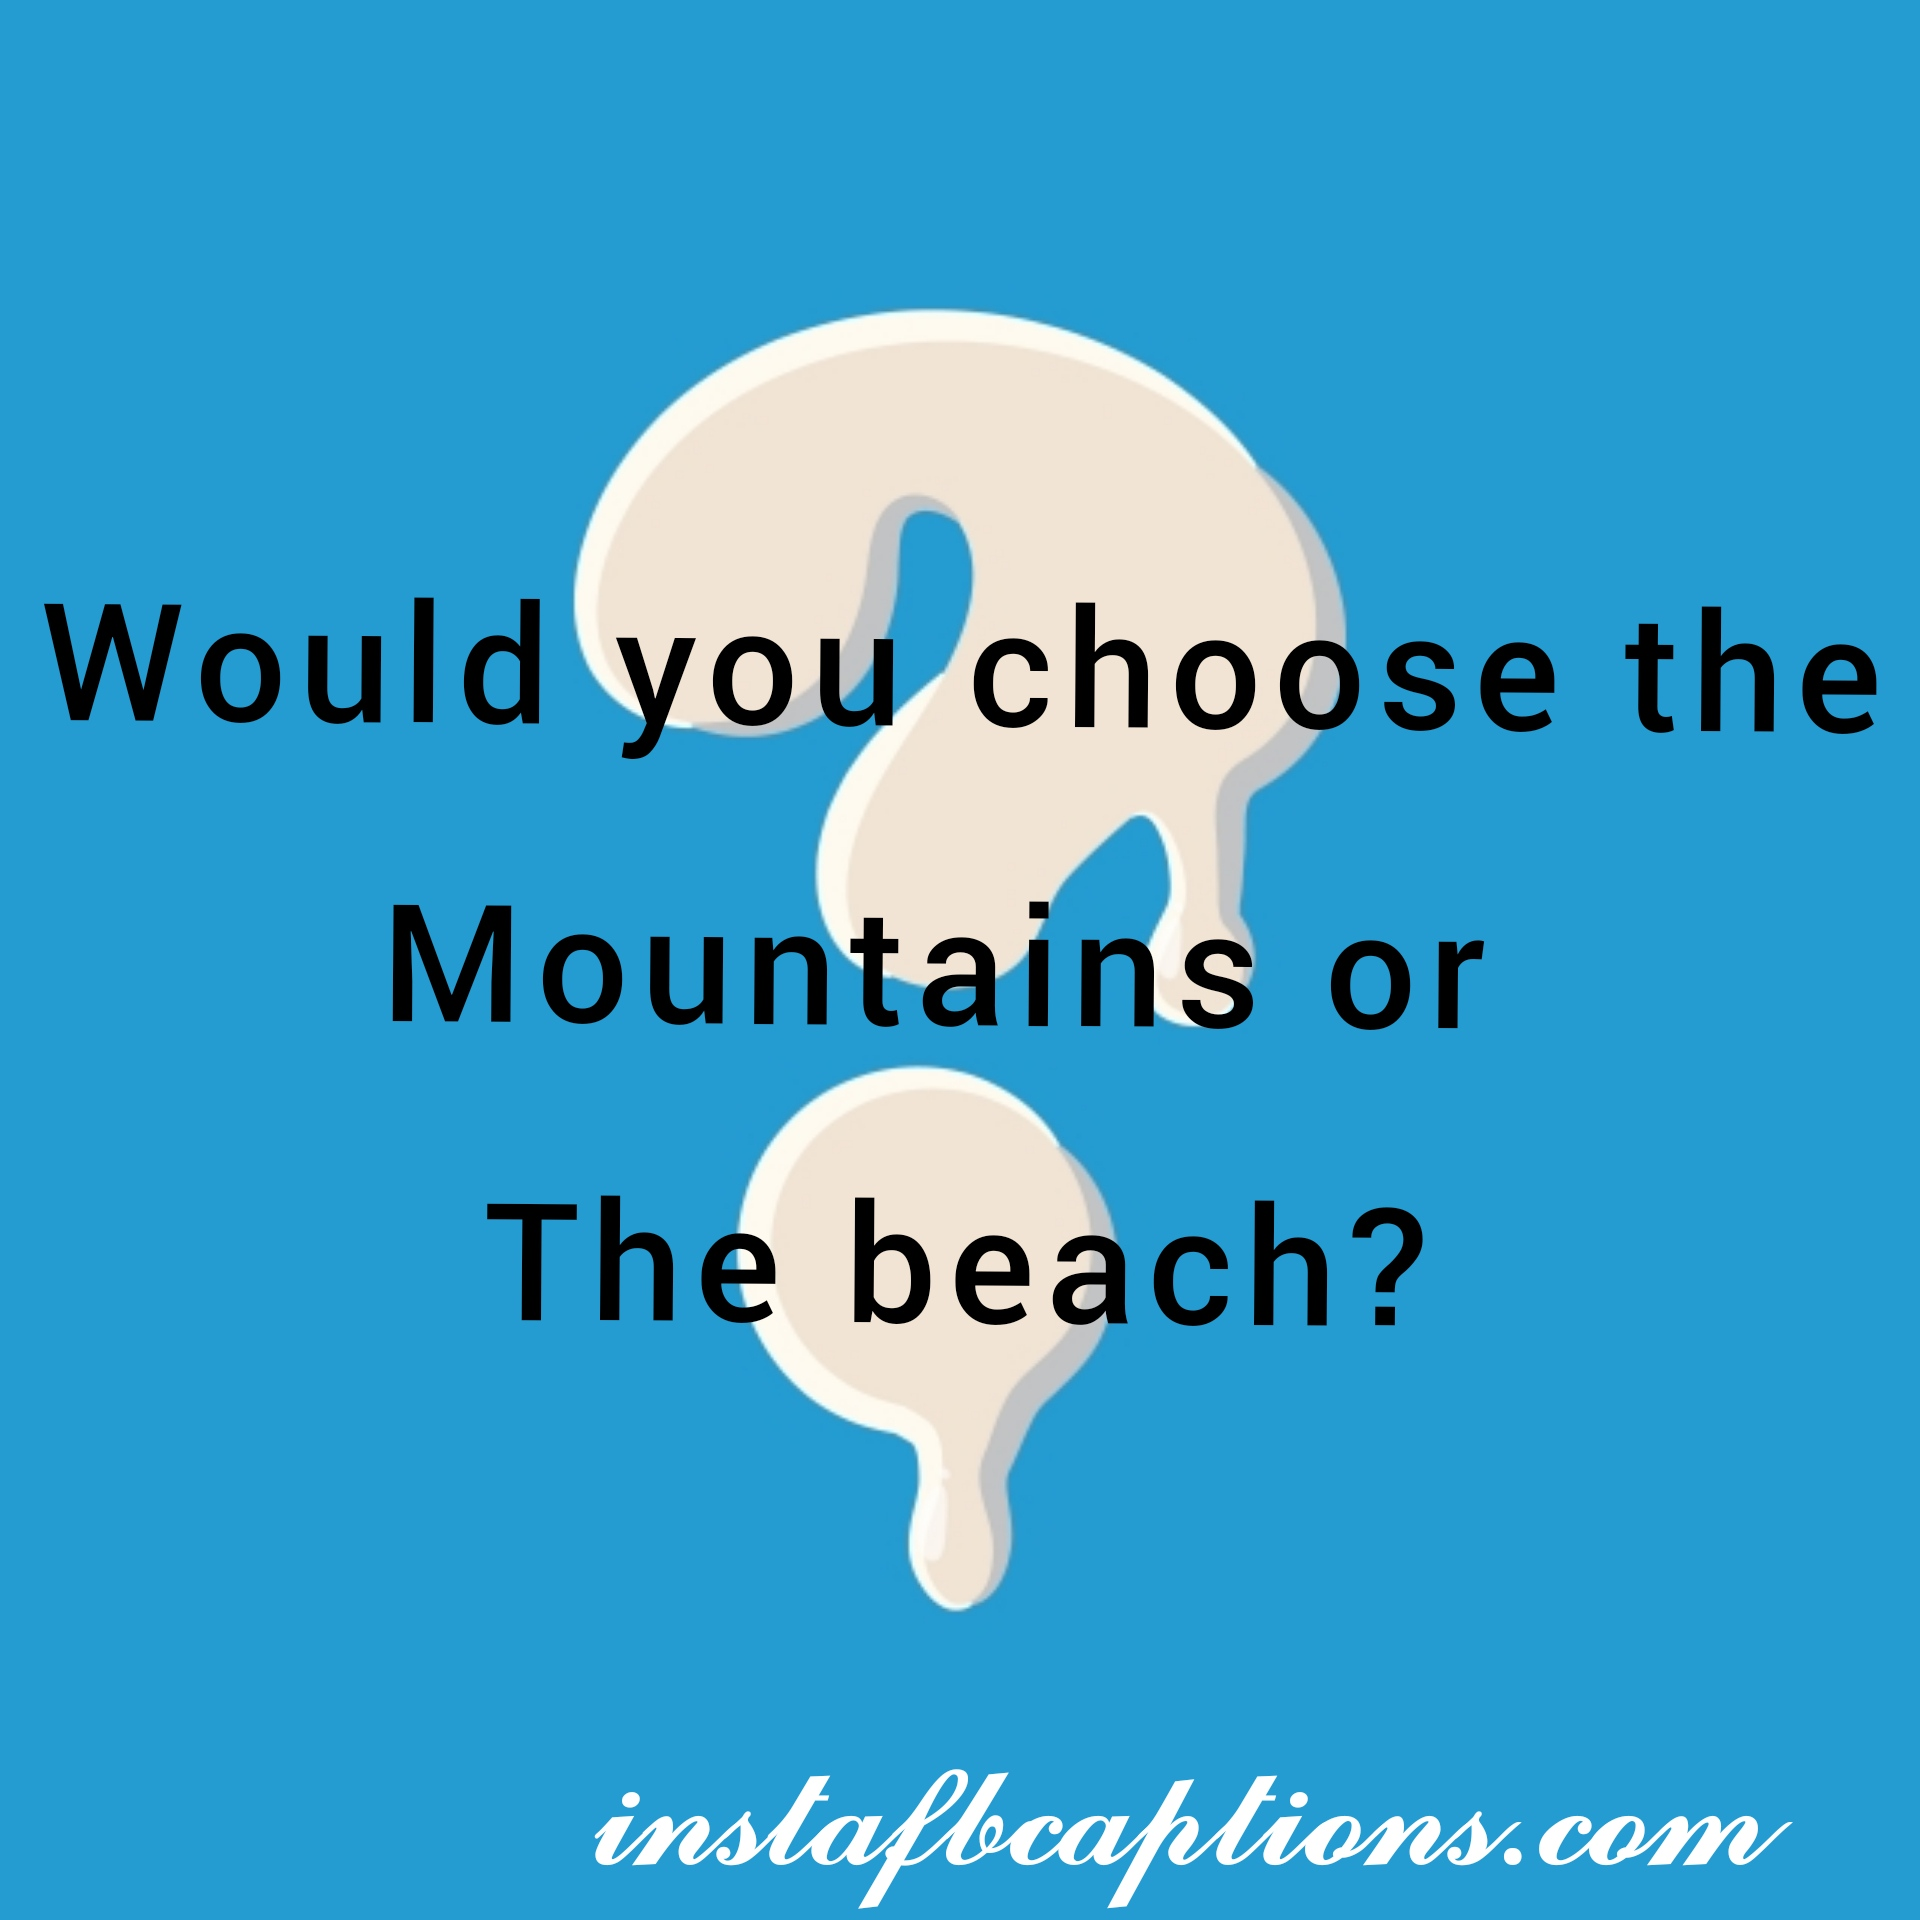 Would You Choose The Mountains Or The Beach  - would you choose the mountains or the beach - Question Instagram captions || (selfies funny Best)